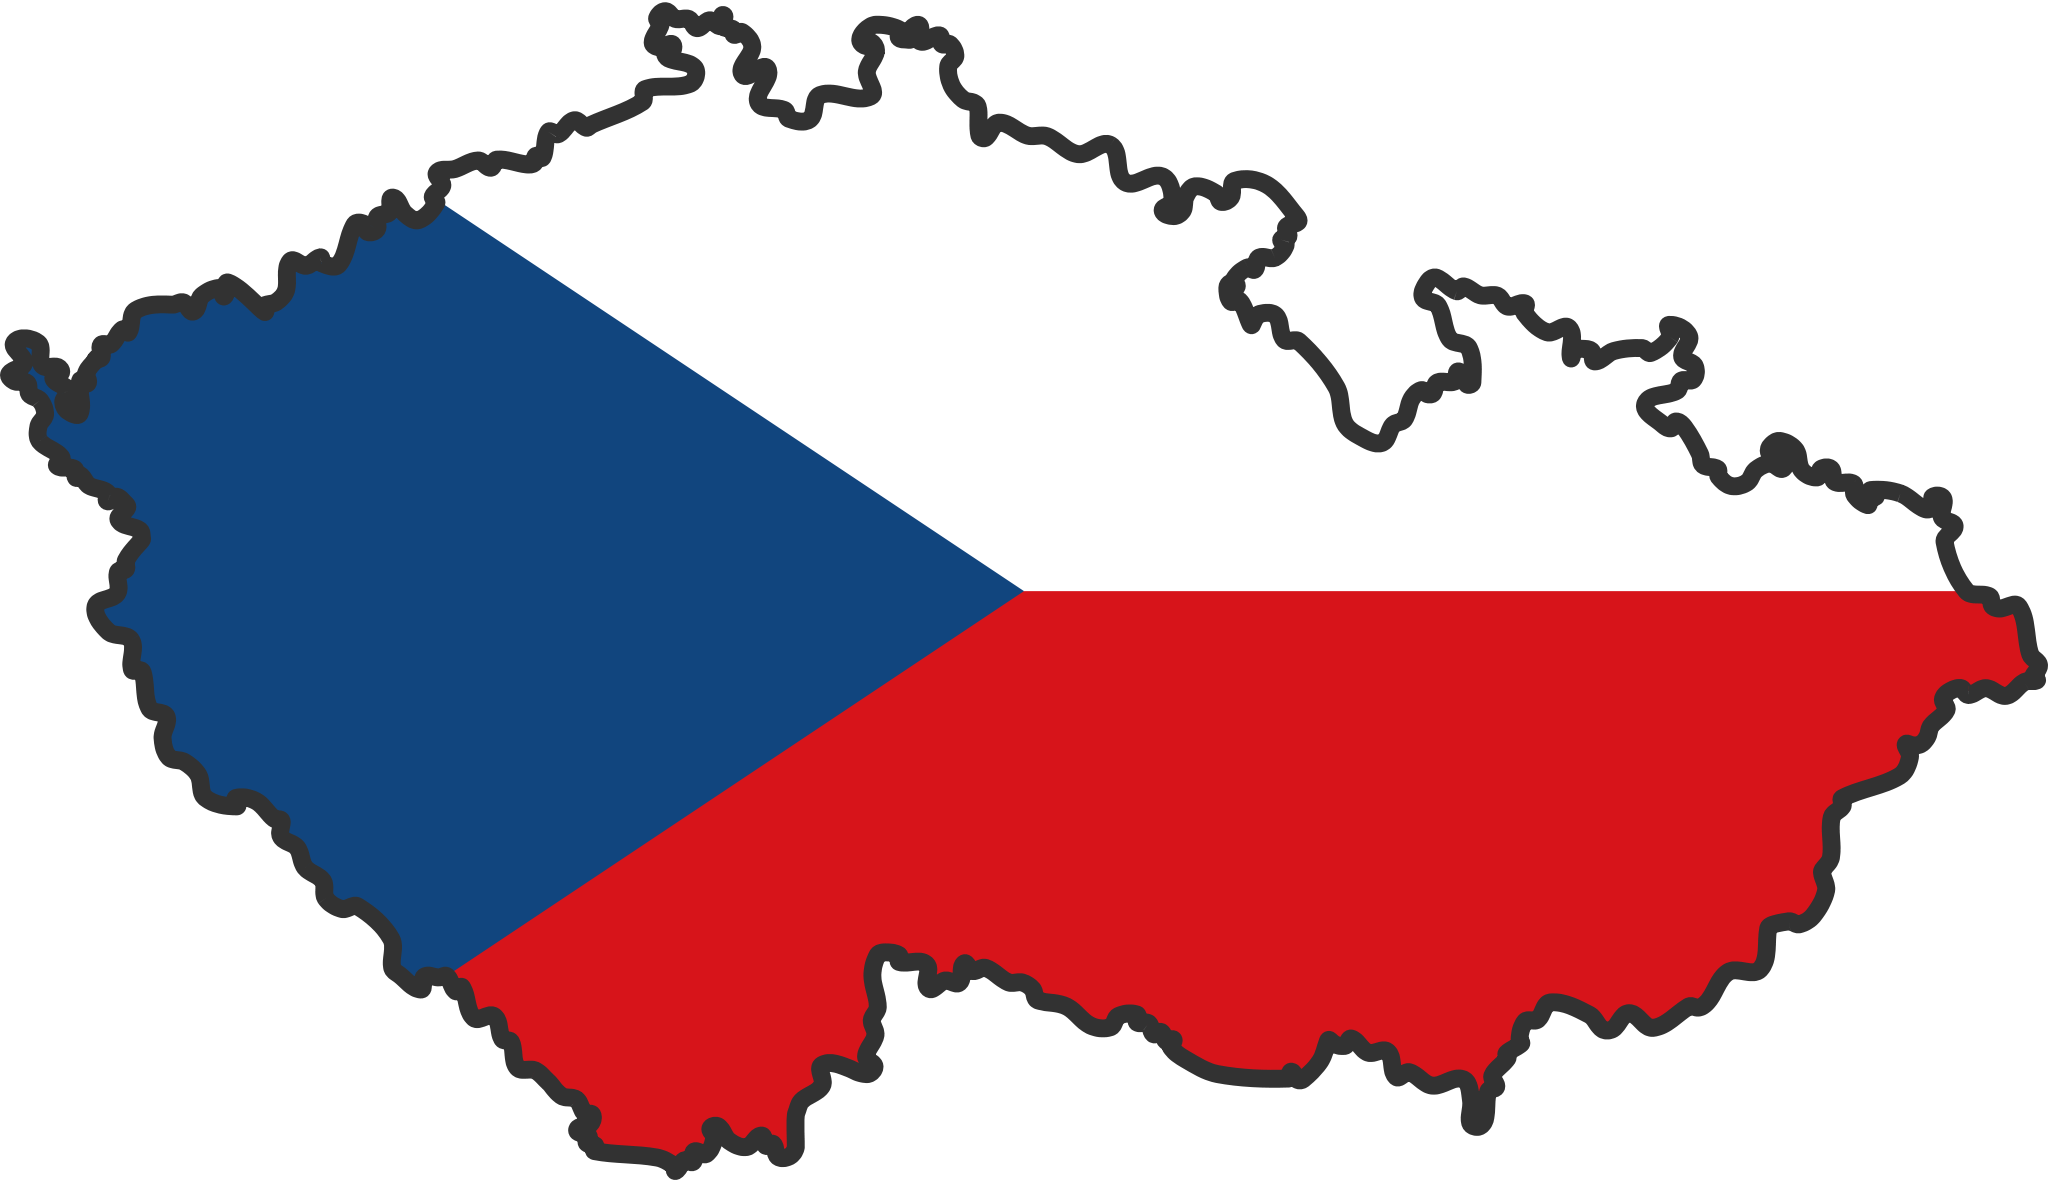 File:Flag of the Czech Republic.svg Wikimedia Commons